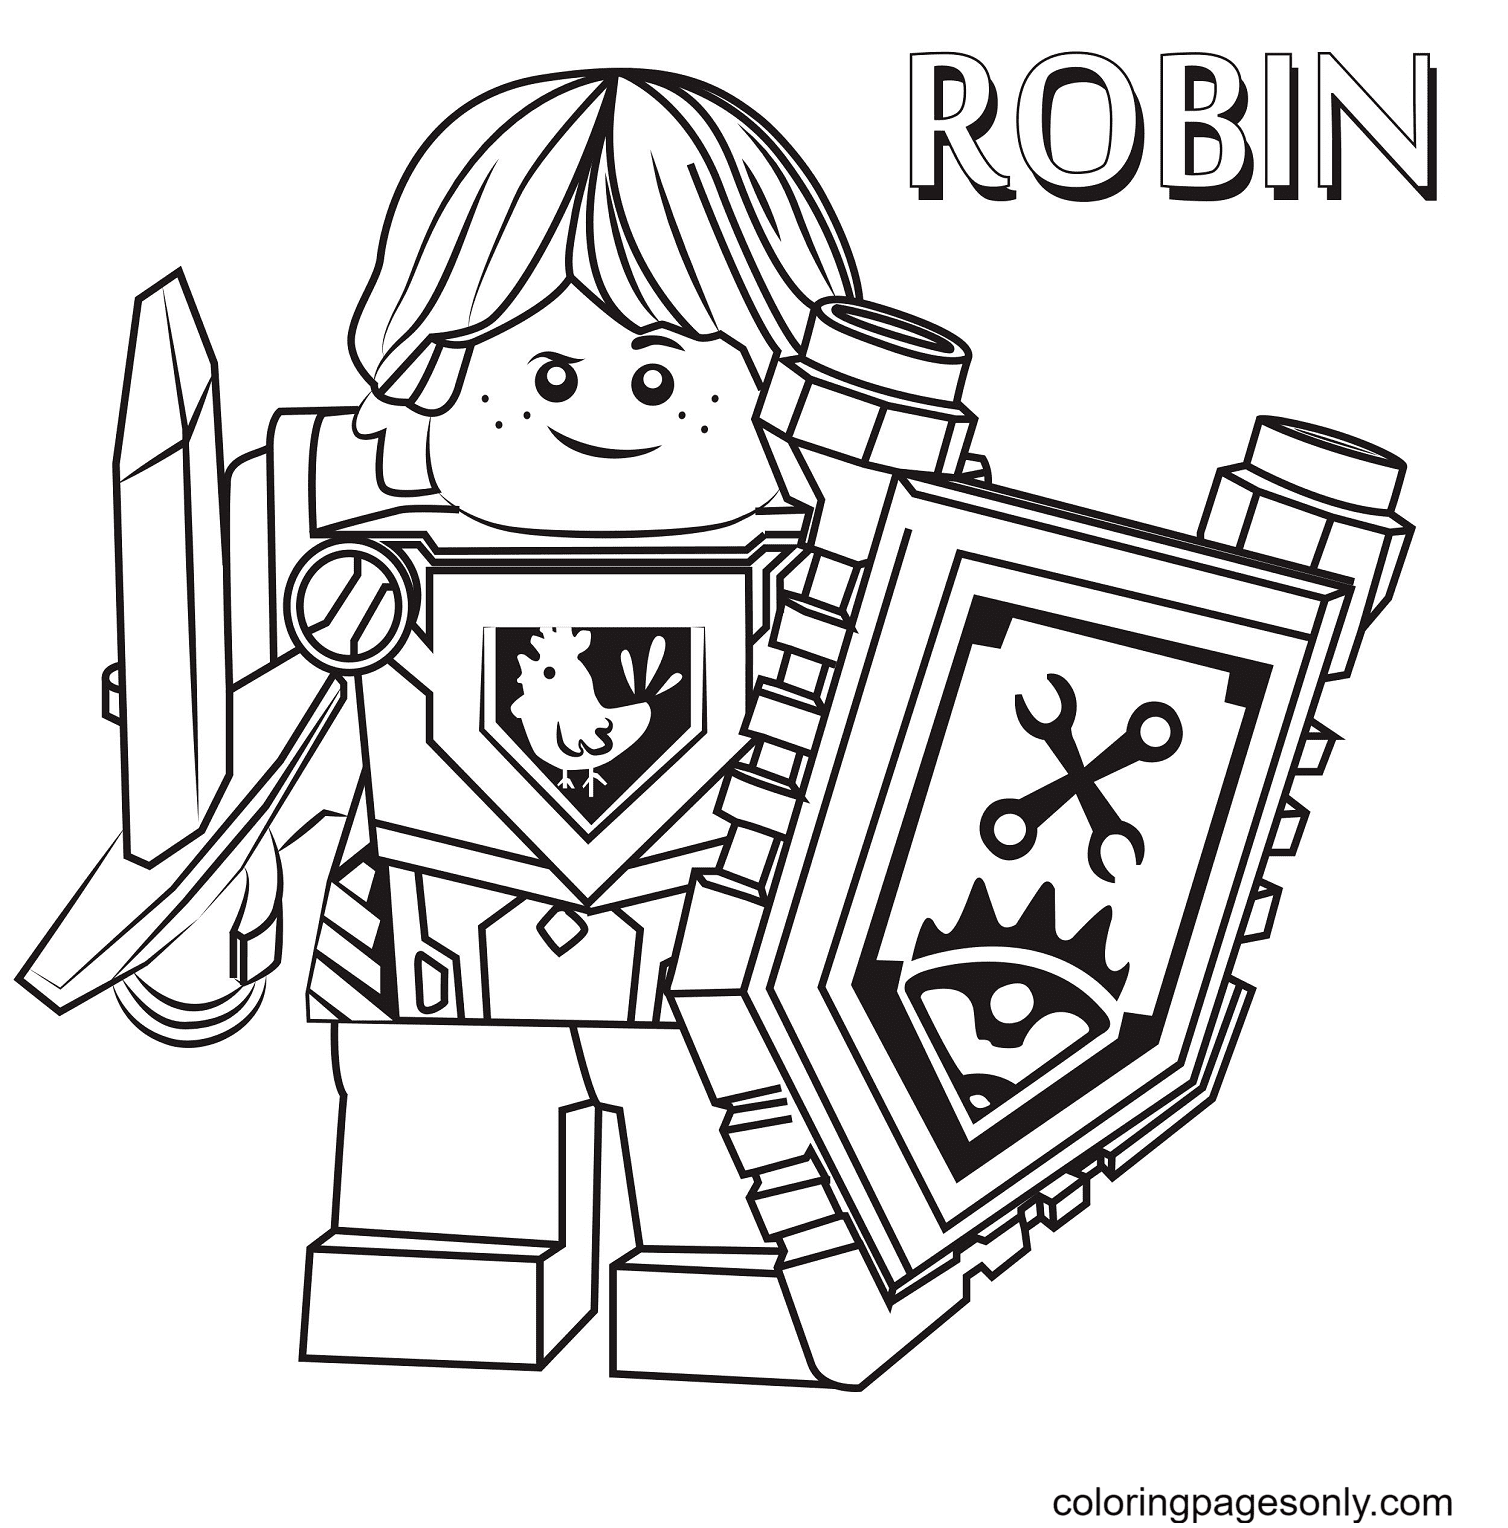 Robin Lego Nexo Knight Coloring Page